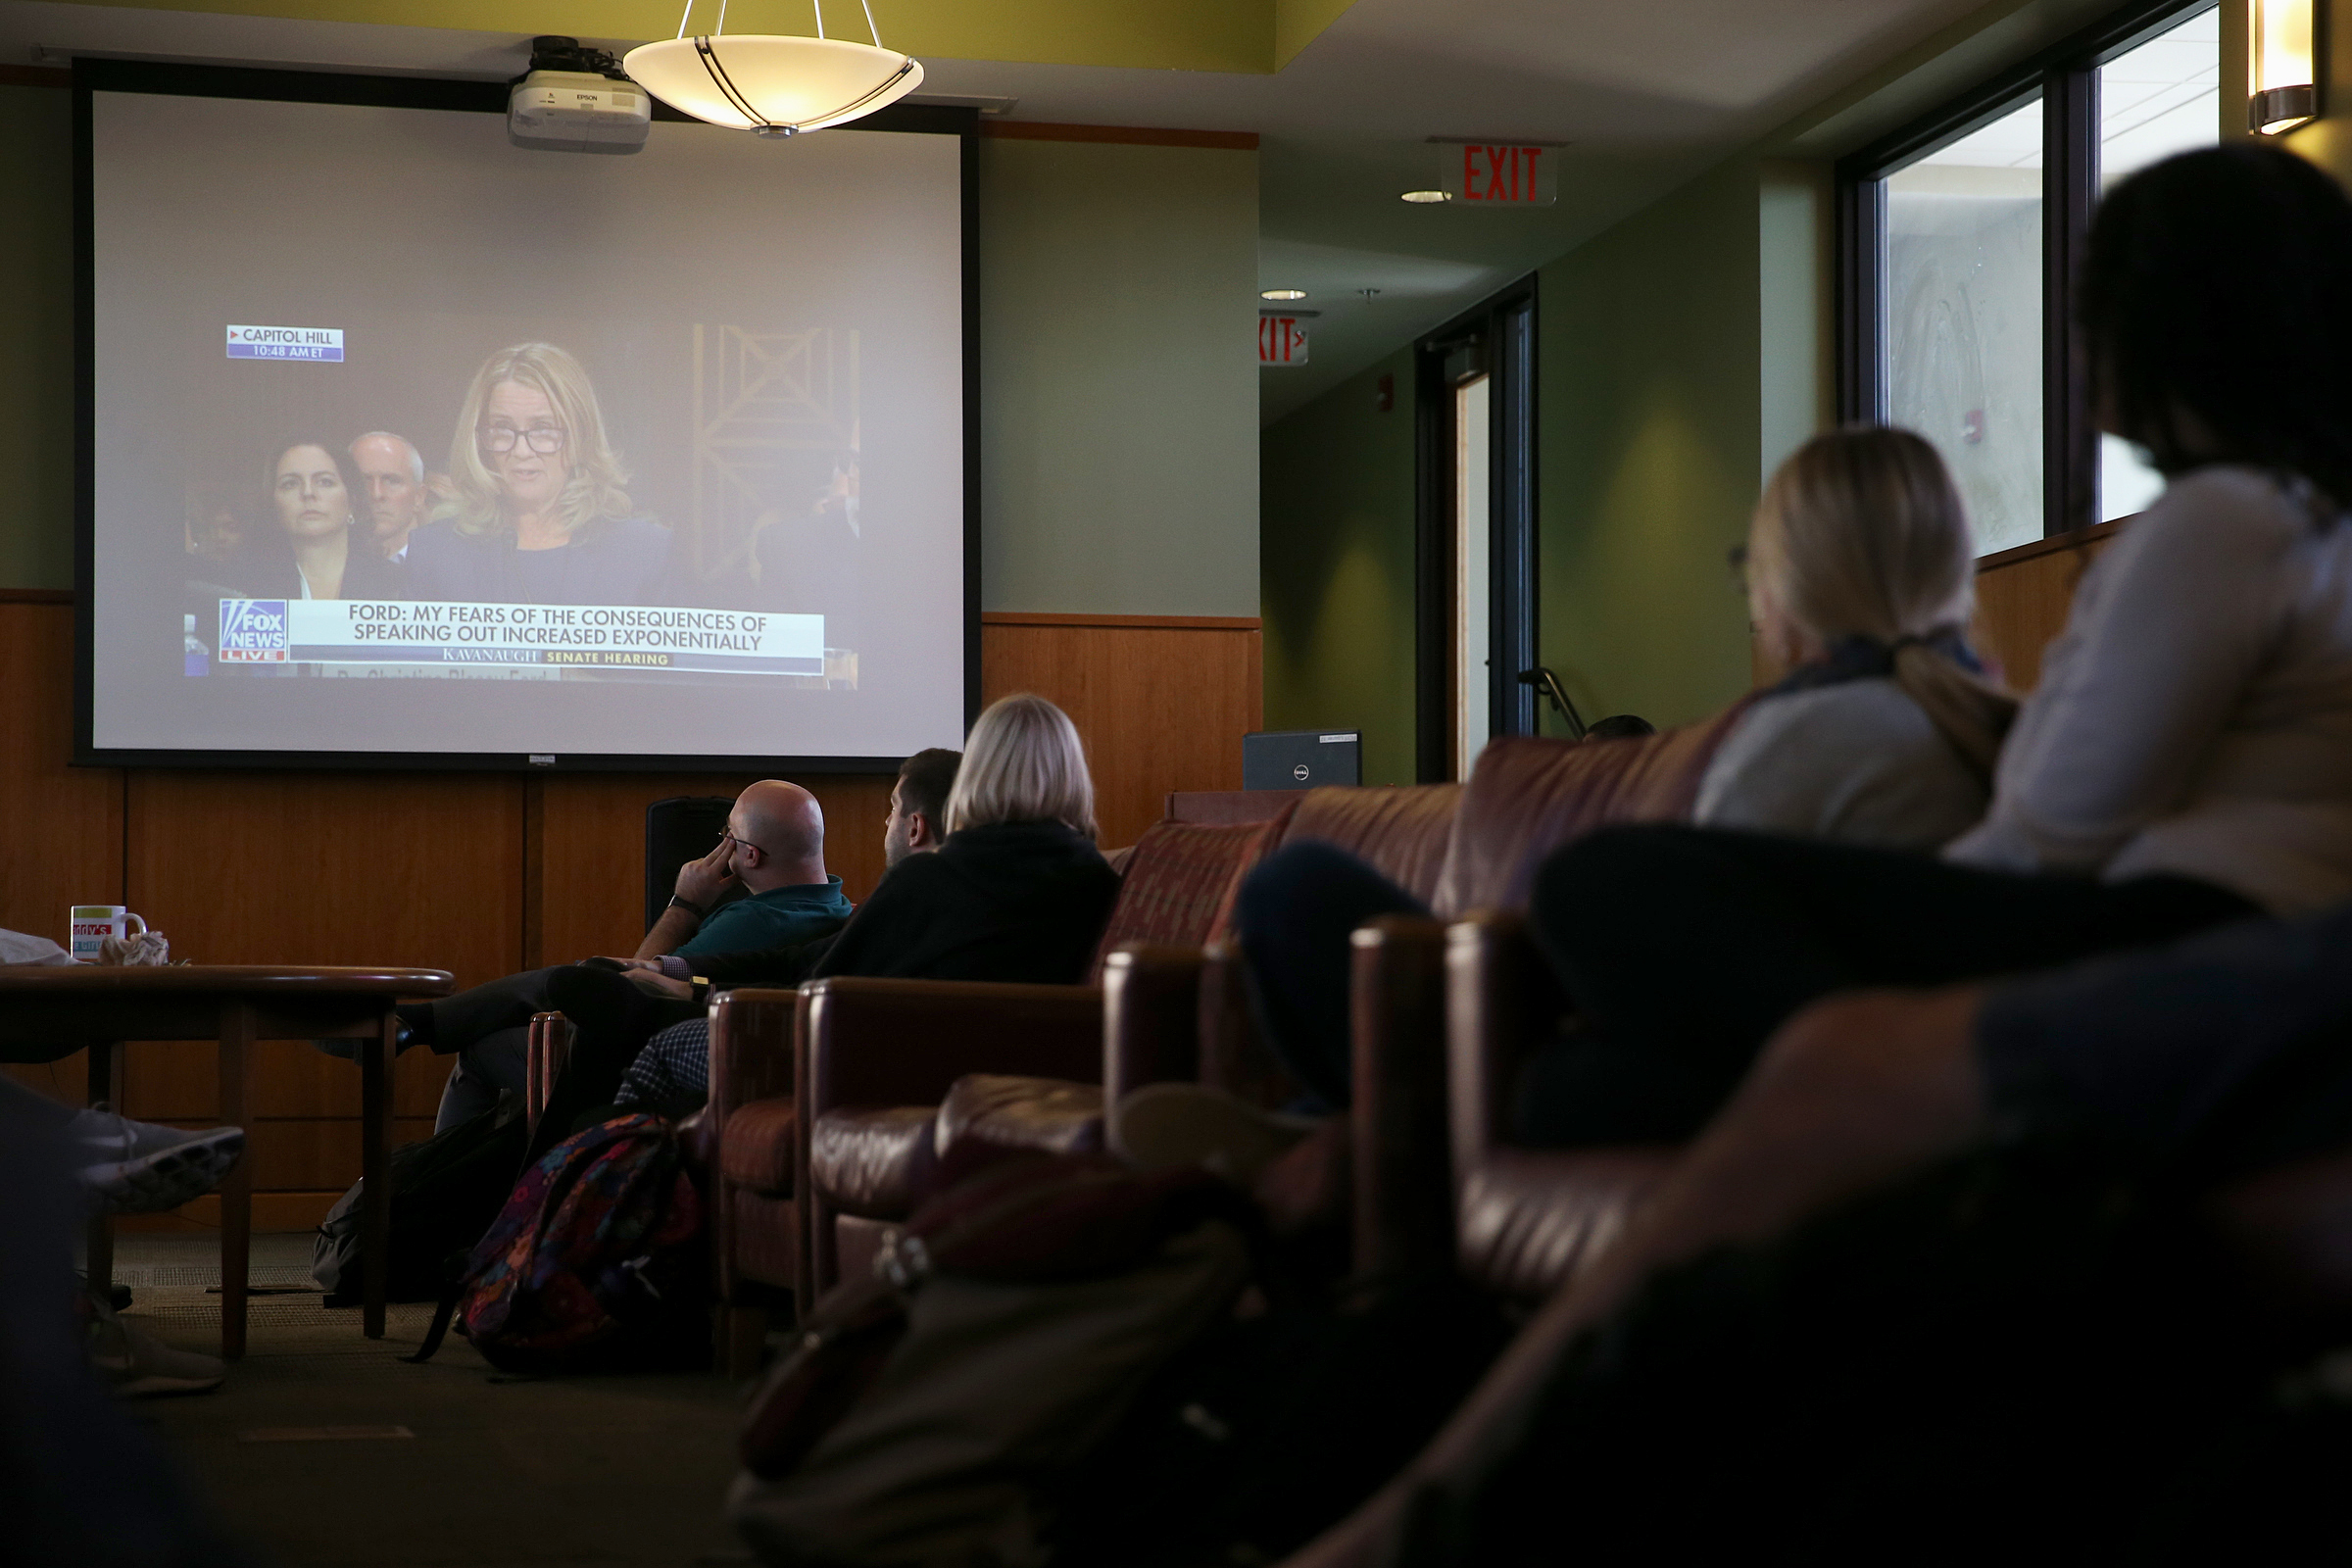 Students and faculty at Rutgers School of Law in Camden, N.J., watch Christine Blasey Ford testify before the Senate Judiciary Committee about her allegation that Supreme Court nominee Brett Kavanaugh sexual assaulted her, Thursday, Sept. 27, 2018.